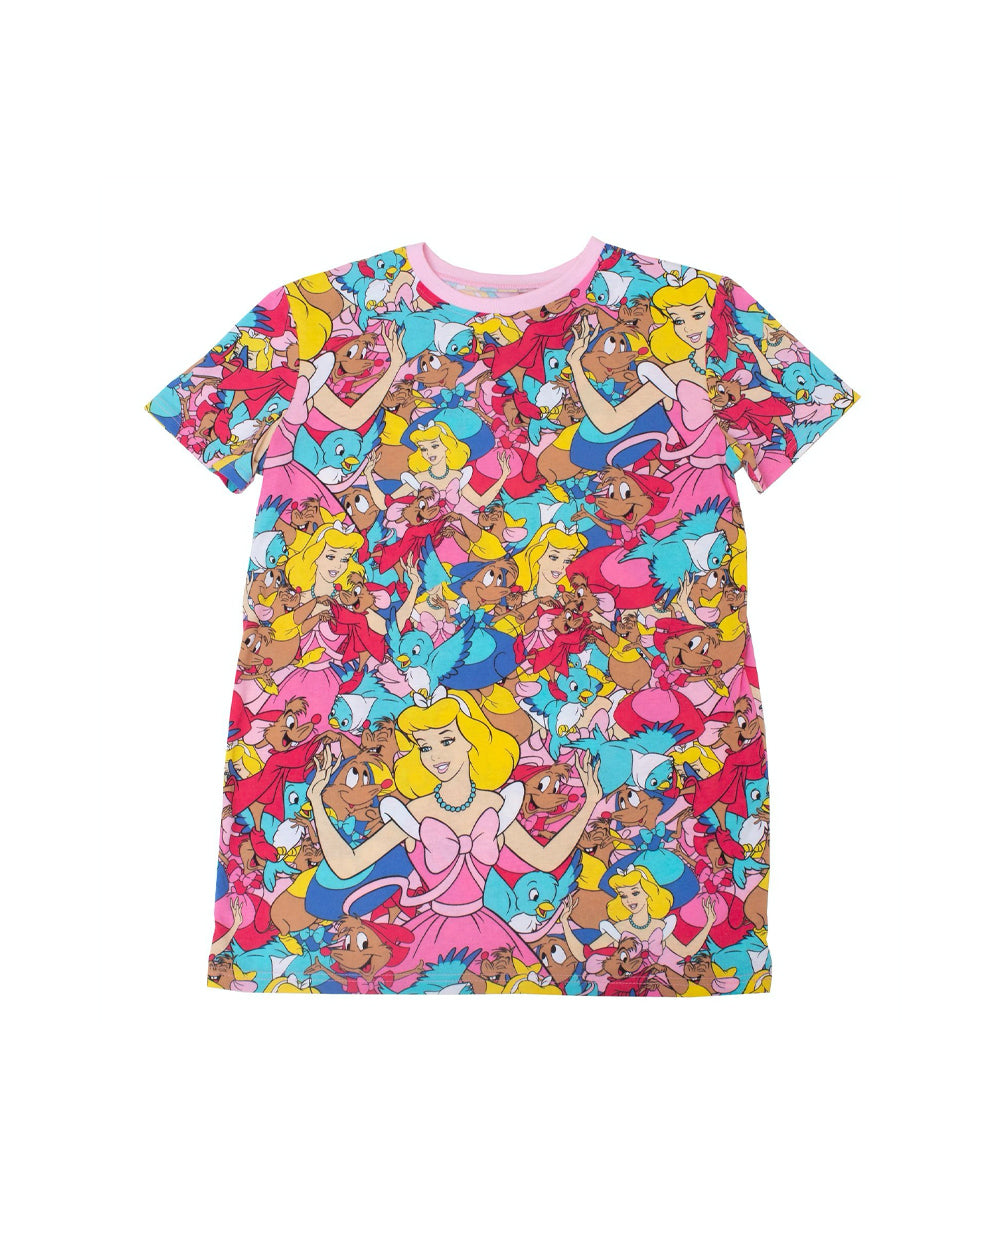 Cakeworthy - Disney Cinderella AOP Unisex Tee - The Pink a la Mode